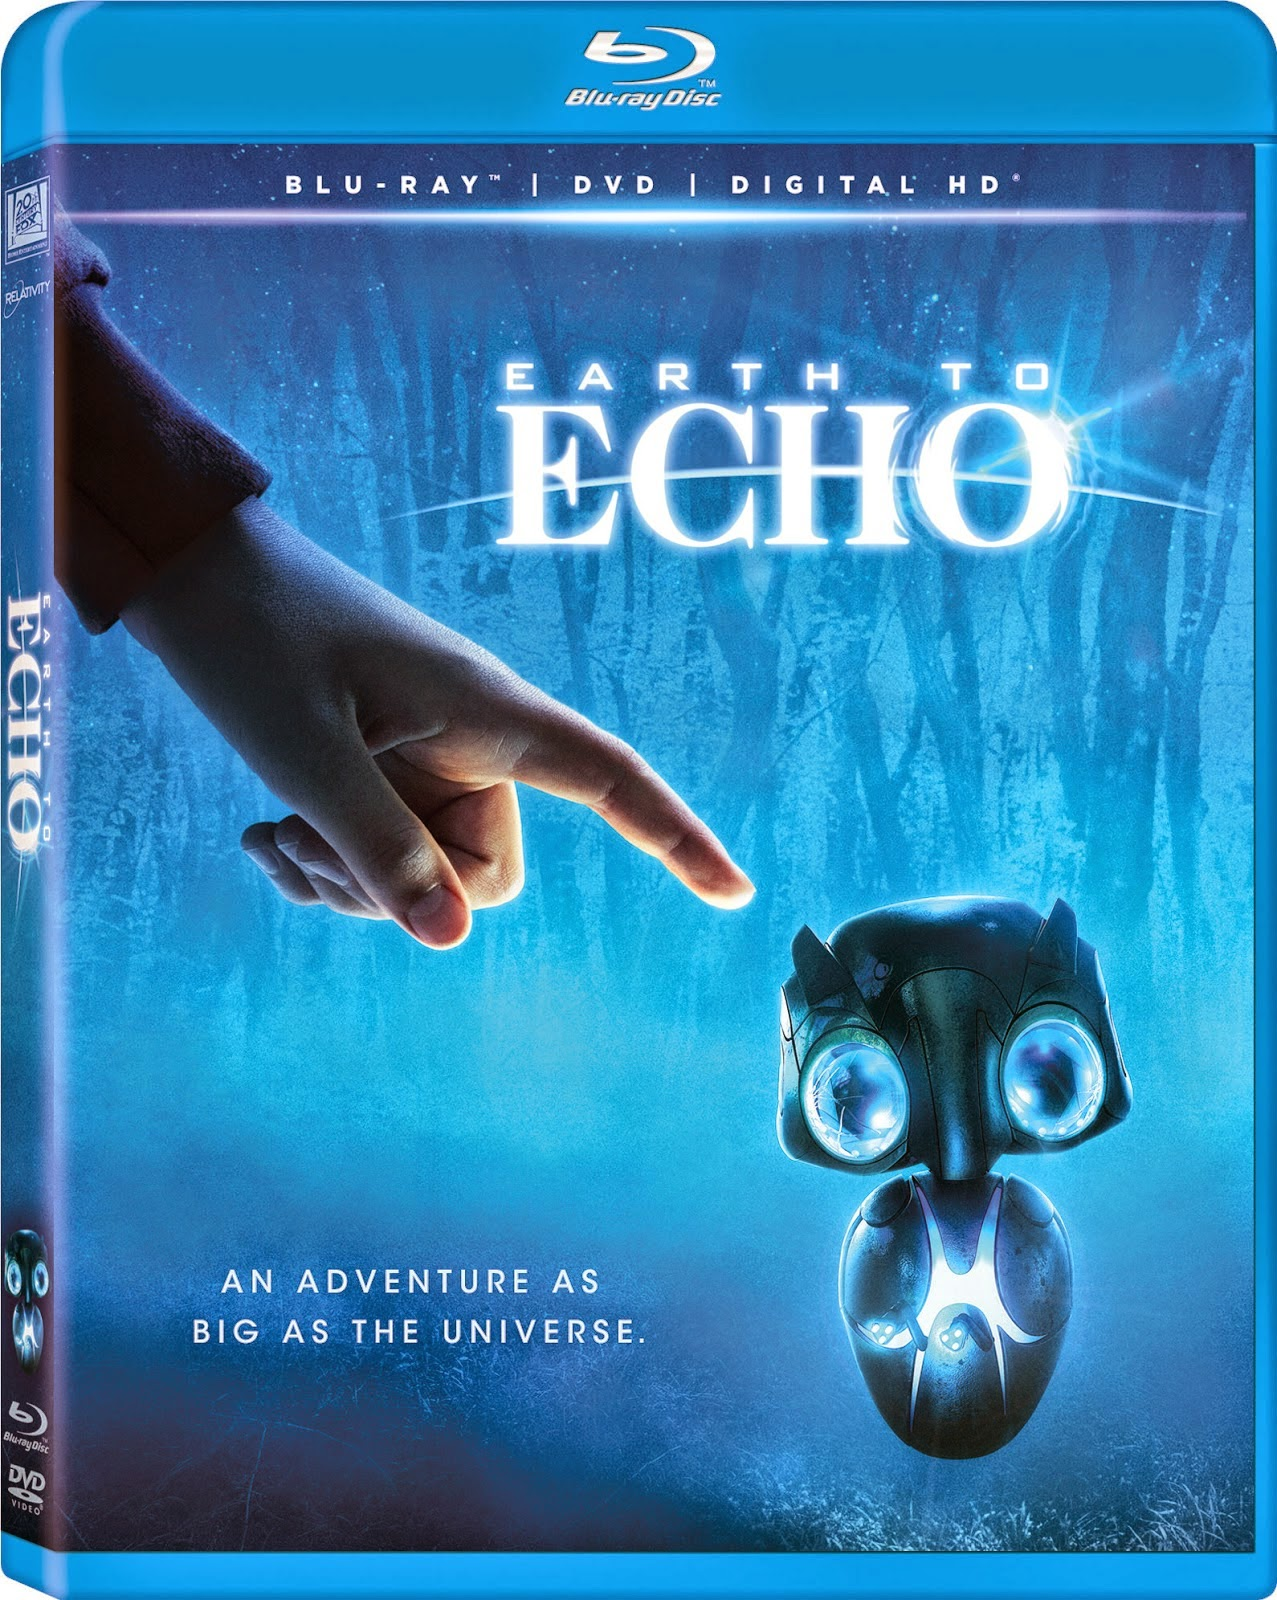 Earth To Echo (2014) 1080p BD25 Blu-ray